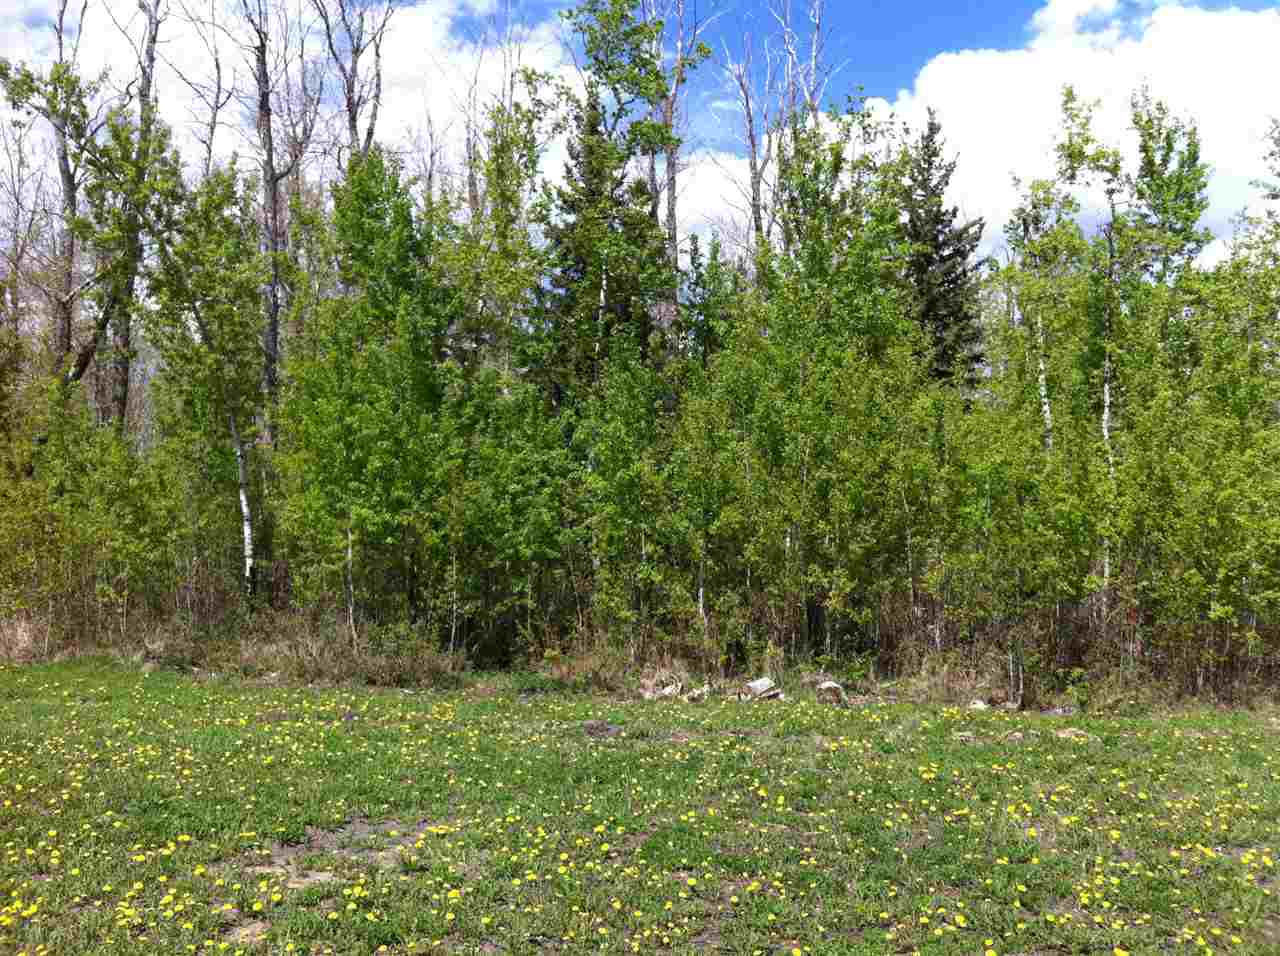 Photo 2: 4718 39 Avenue: Gibbons Vacant Lot for sale : MLS(r) # E4063132